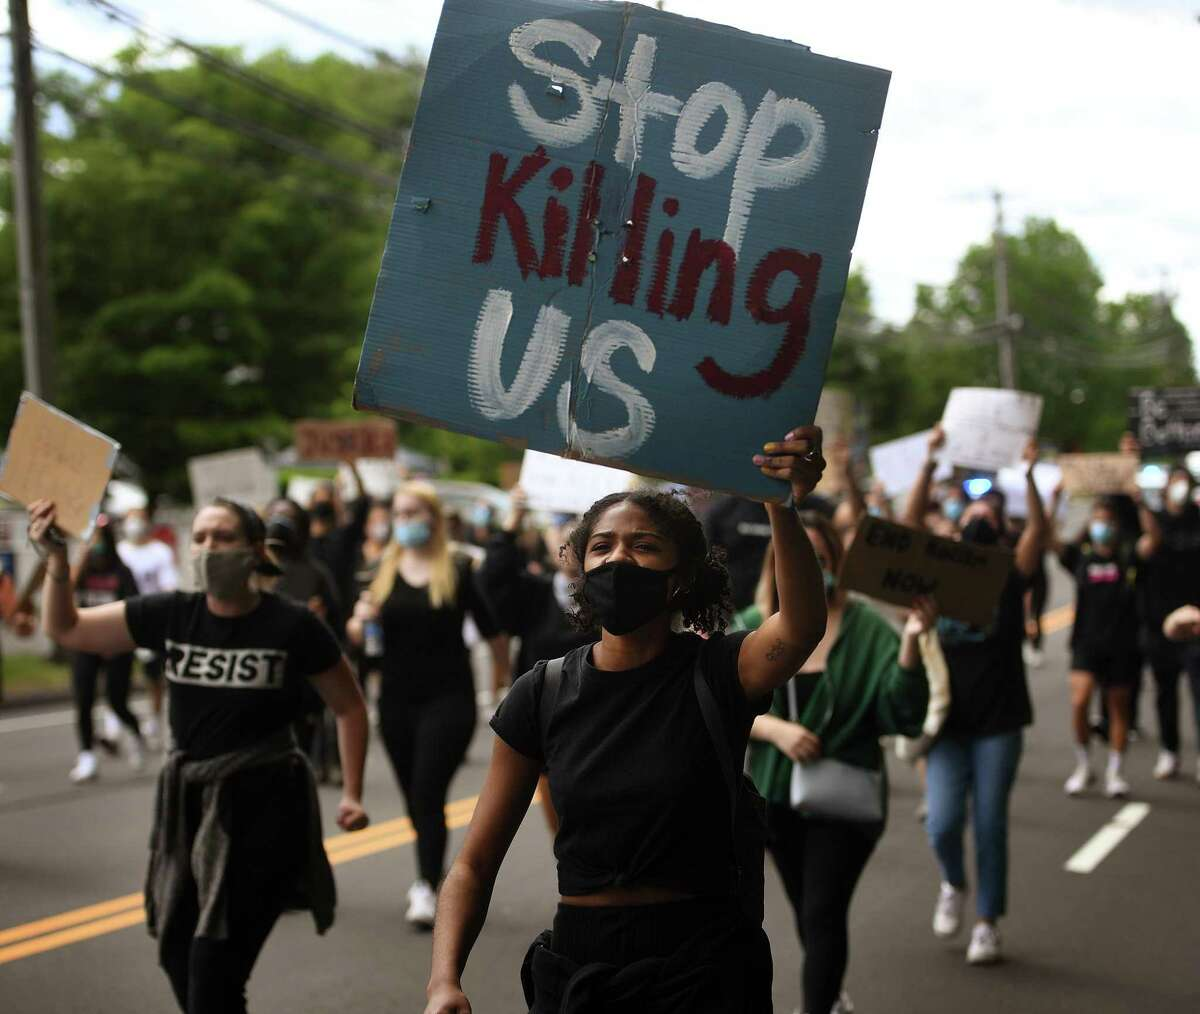 Protestors march up and down the Post Road chanting slogans in a Black Lives Matter protest in Westport on Monday.